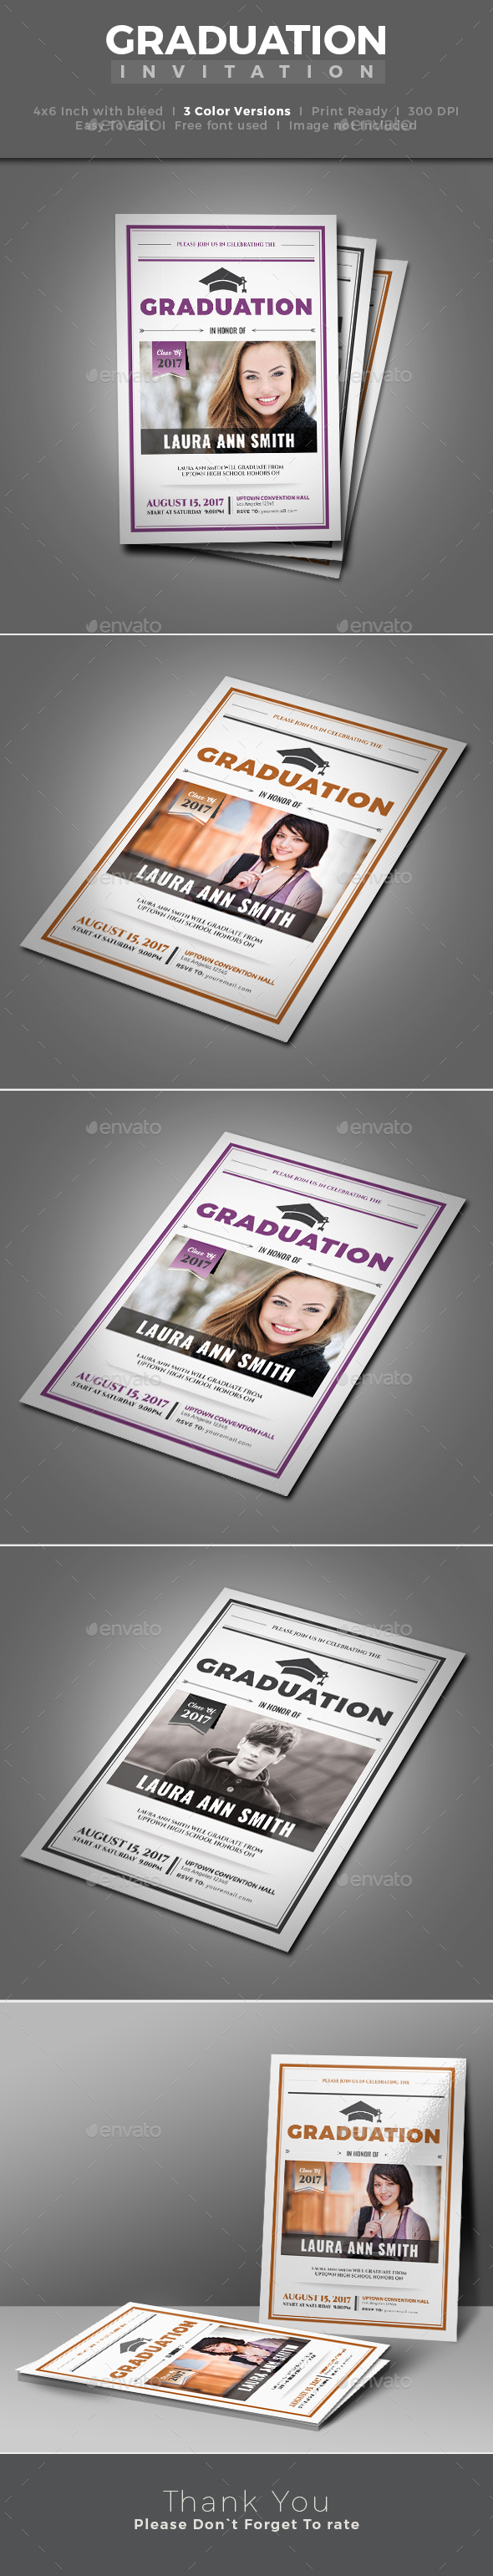 Grad Party Graphics, Designs & Templates from GraphicRiver